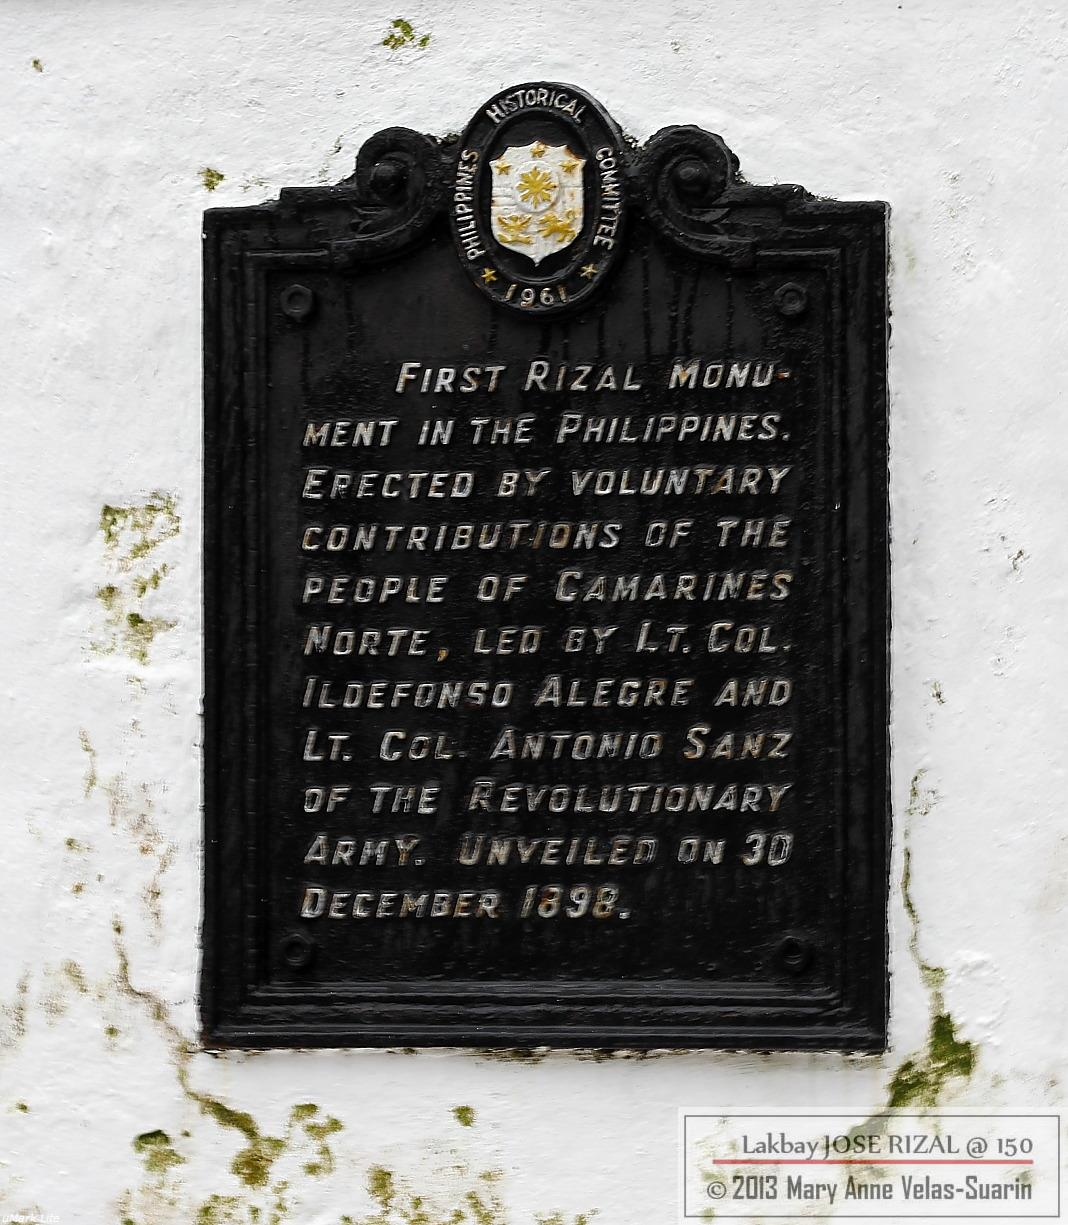 The historical marker of the Rizal Monument in Daet, Camarines Norte. [Photo by Mary Anne Velas-Suarin]